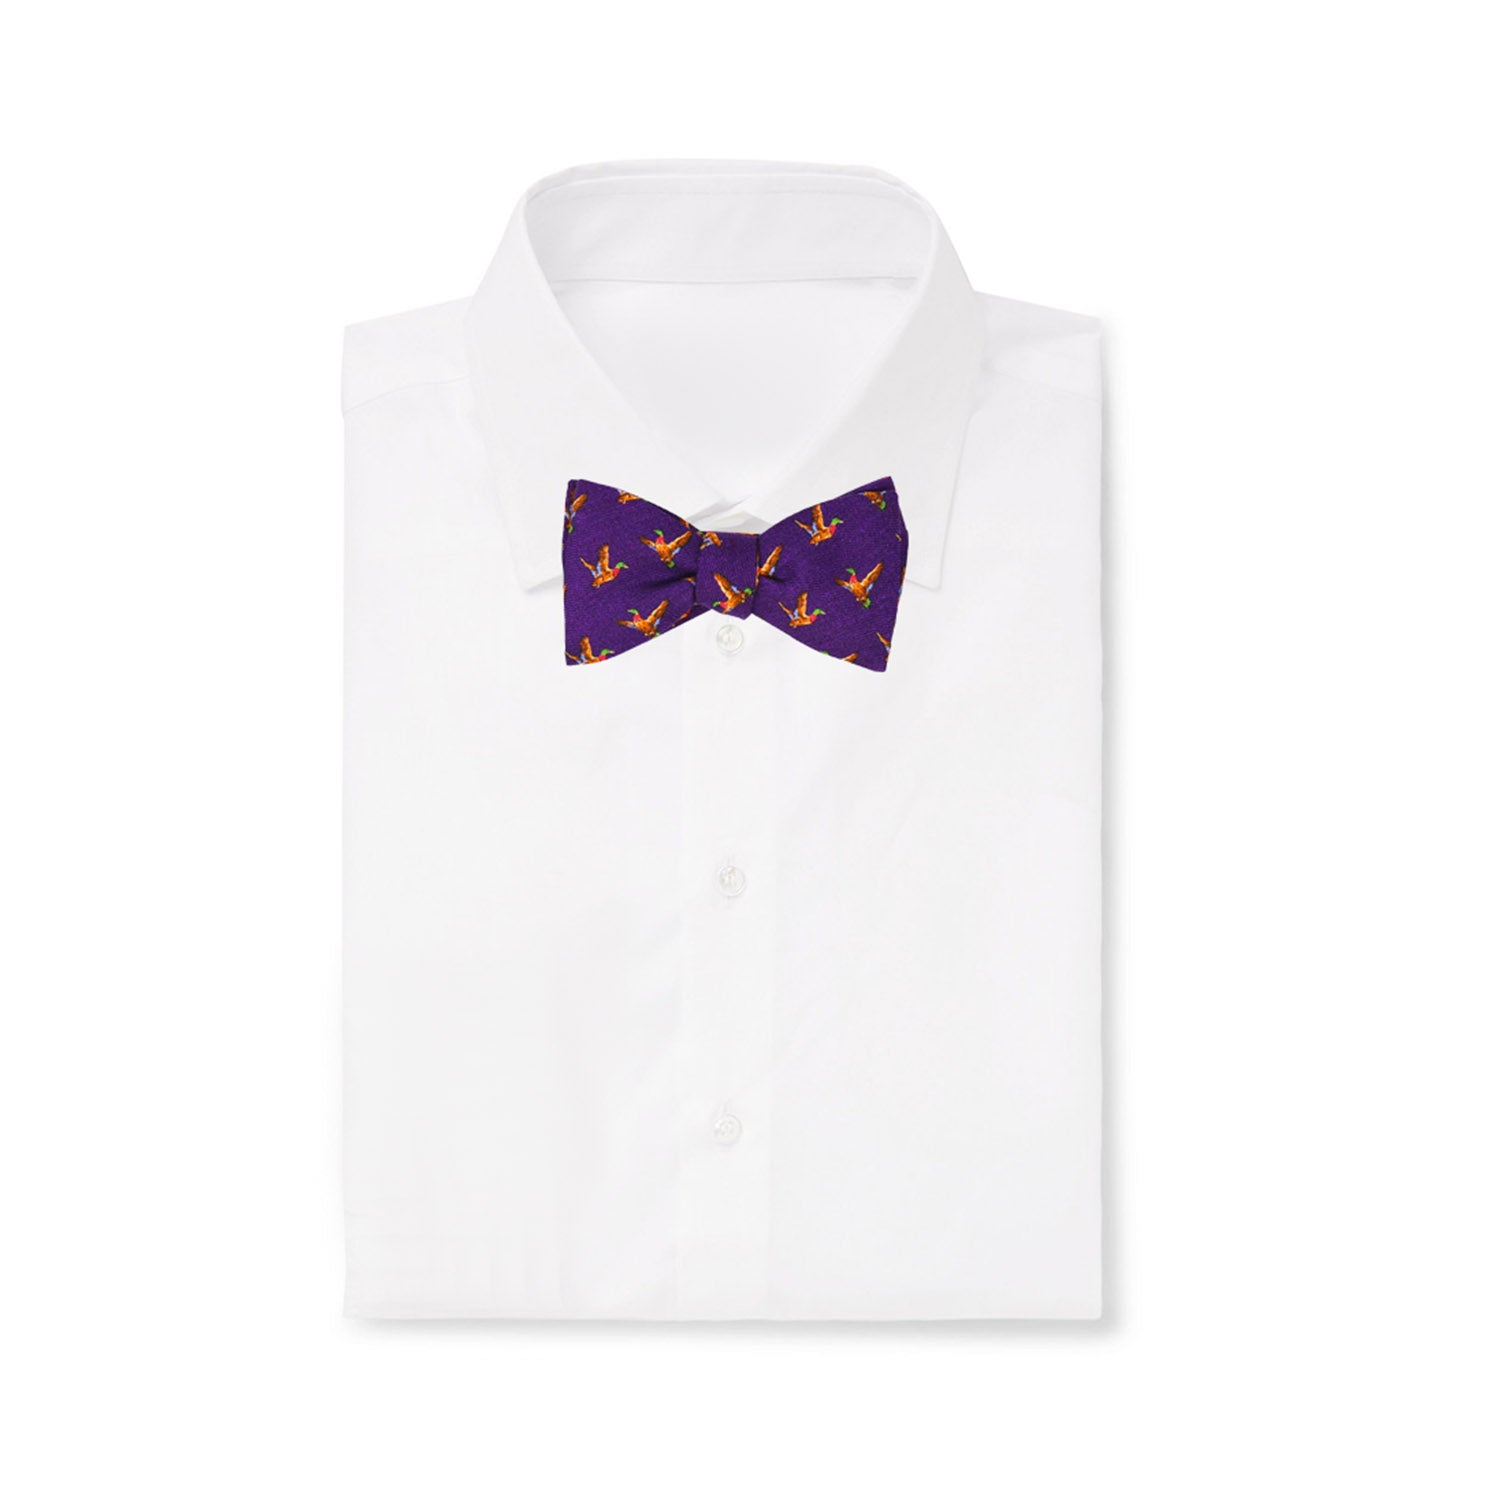 Purple Birds Self-Tie Wool Pattern Bow Tie - serafinesilk